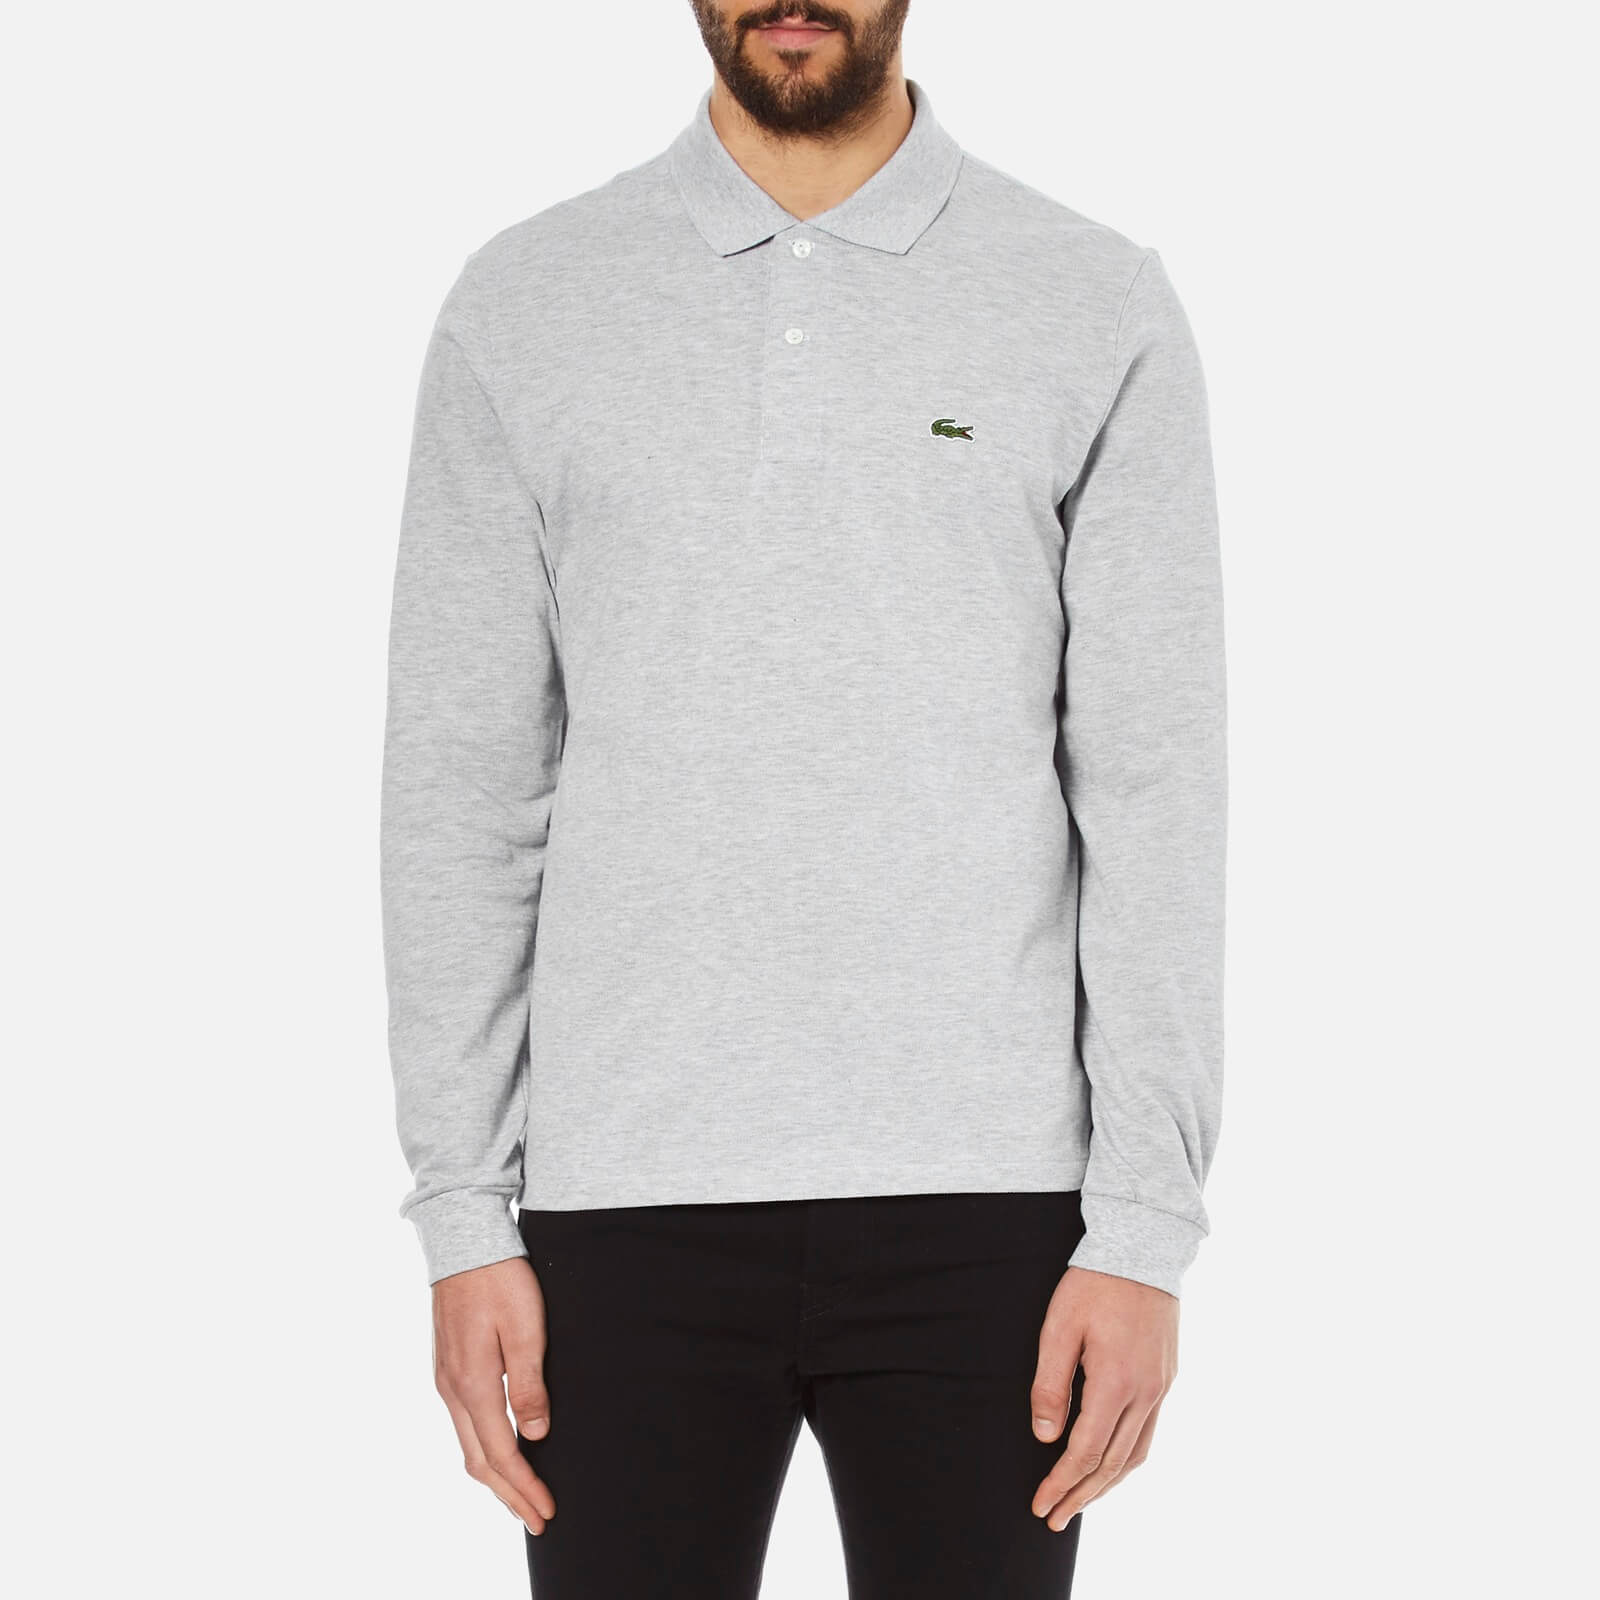 b9c137a8 Lacoste Men's Long Sleeve Marl Polo Shirt - Silver Chine - Free UK Delivery  over £50